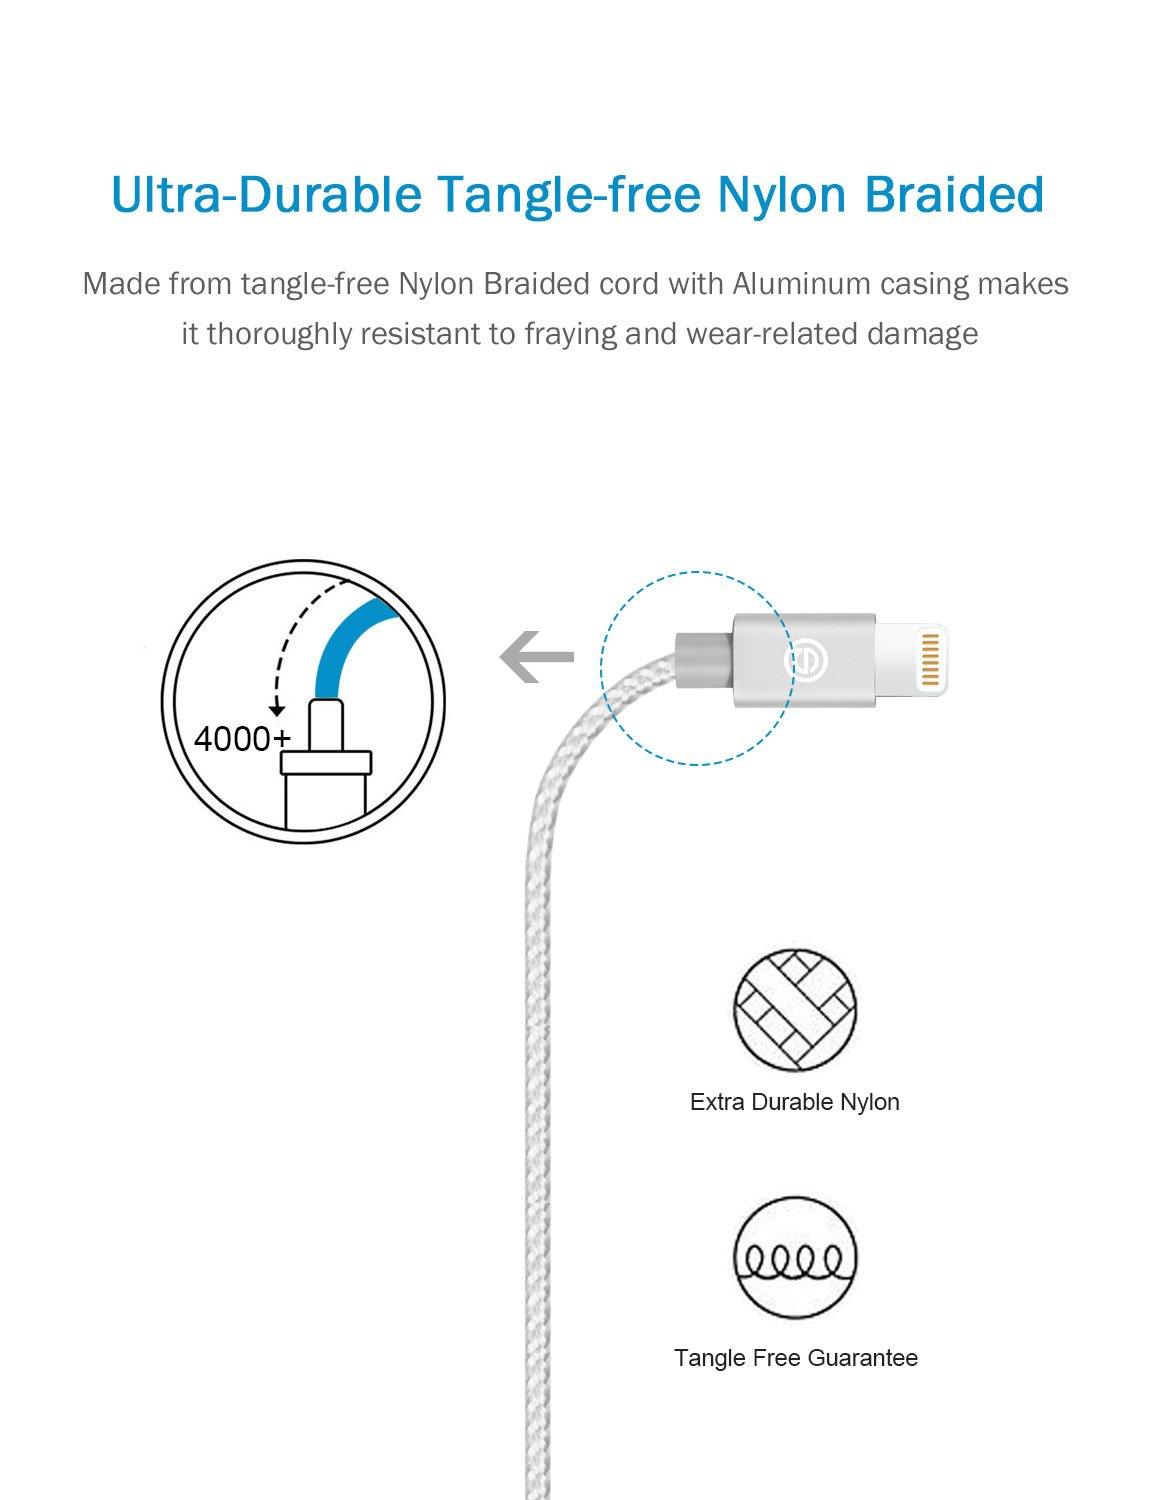 Apple MFi Certified- OPSO Nylon Braided USB Charging Cable/Cord with Lightning Connector for iPhone 7 6s 6 Plus 5s 5,iPad Pro mini iPod 1M / 3.3 ft - Silver